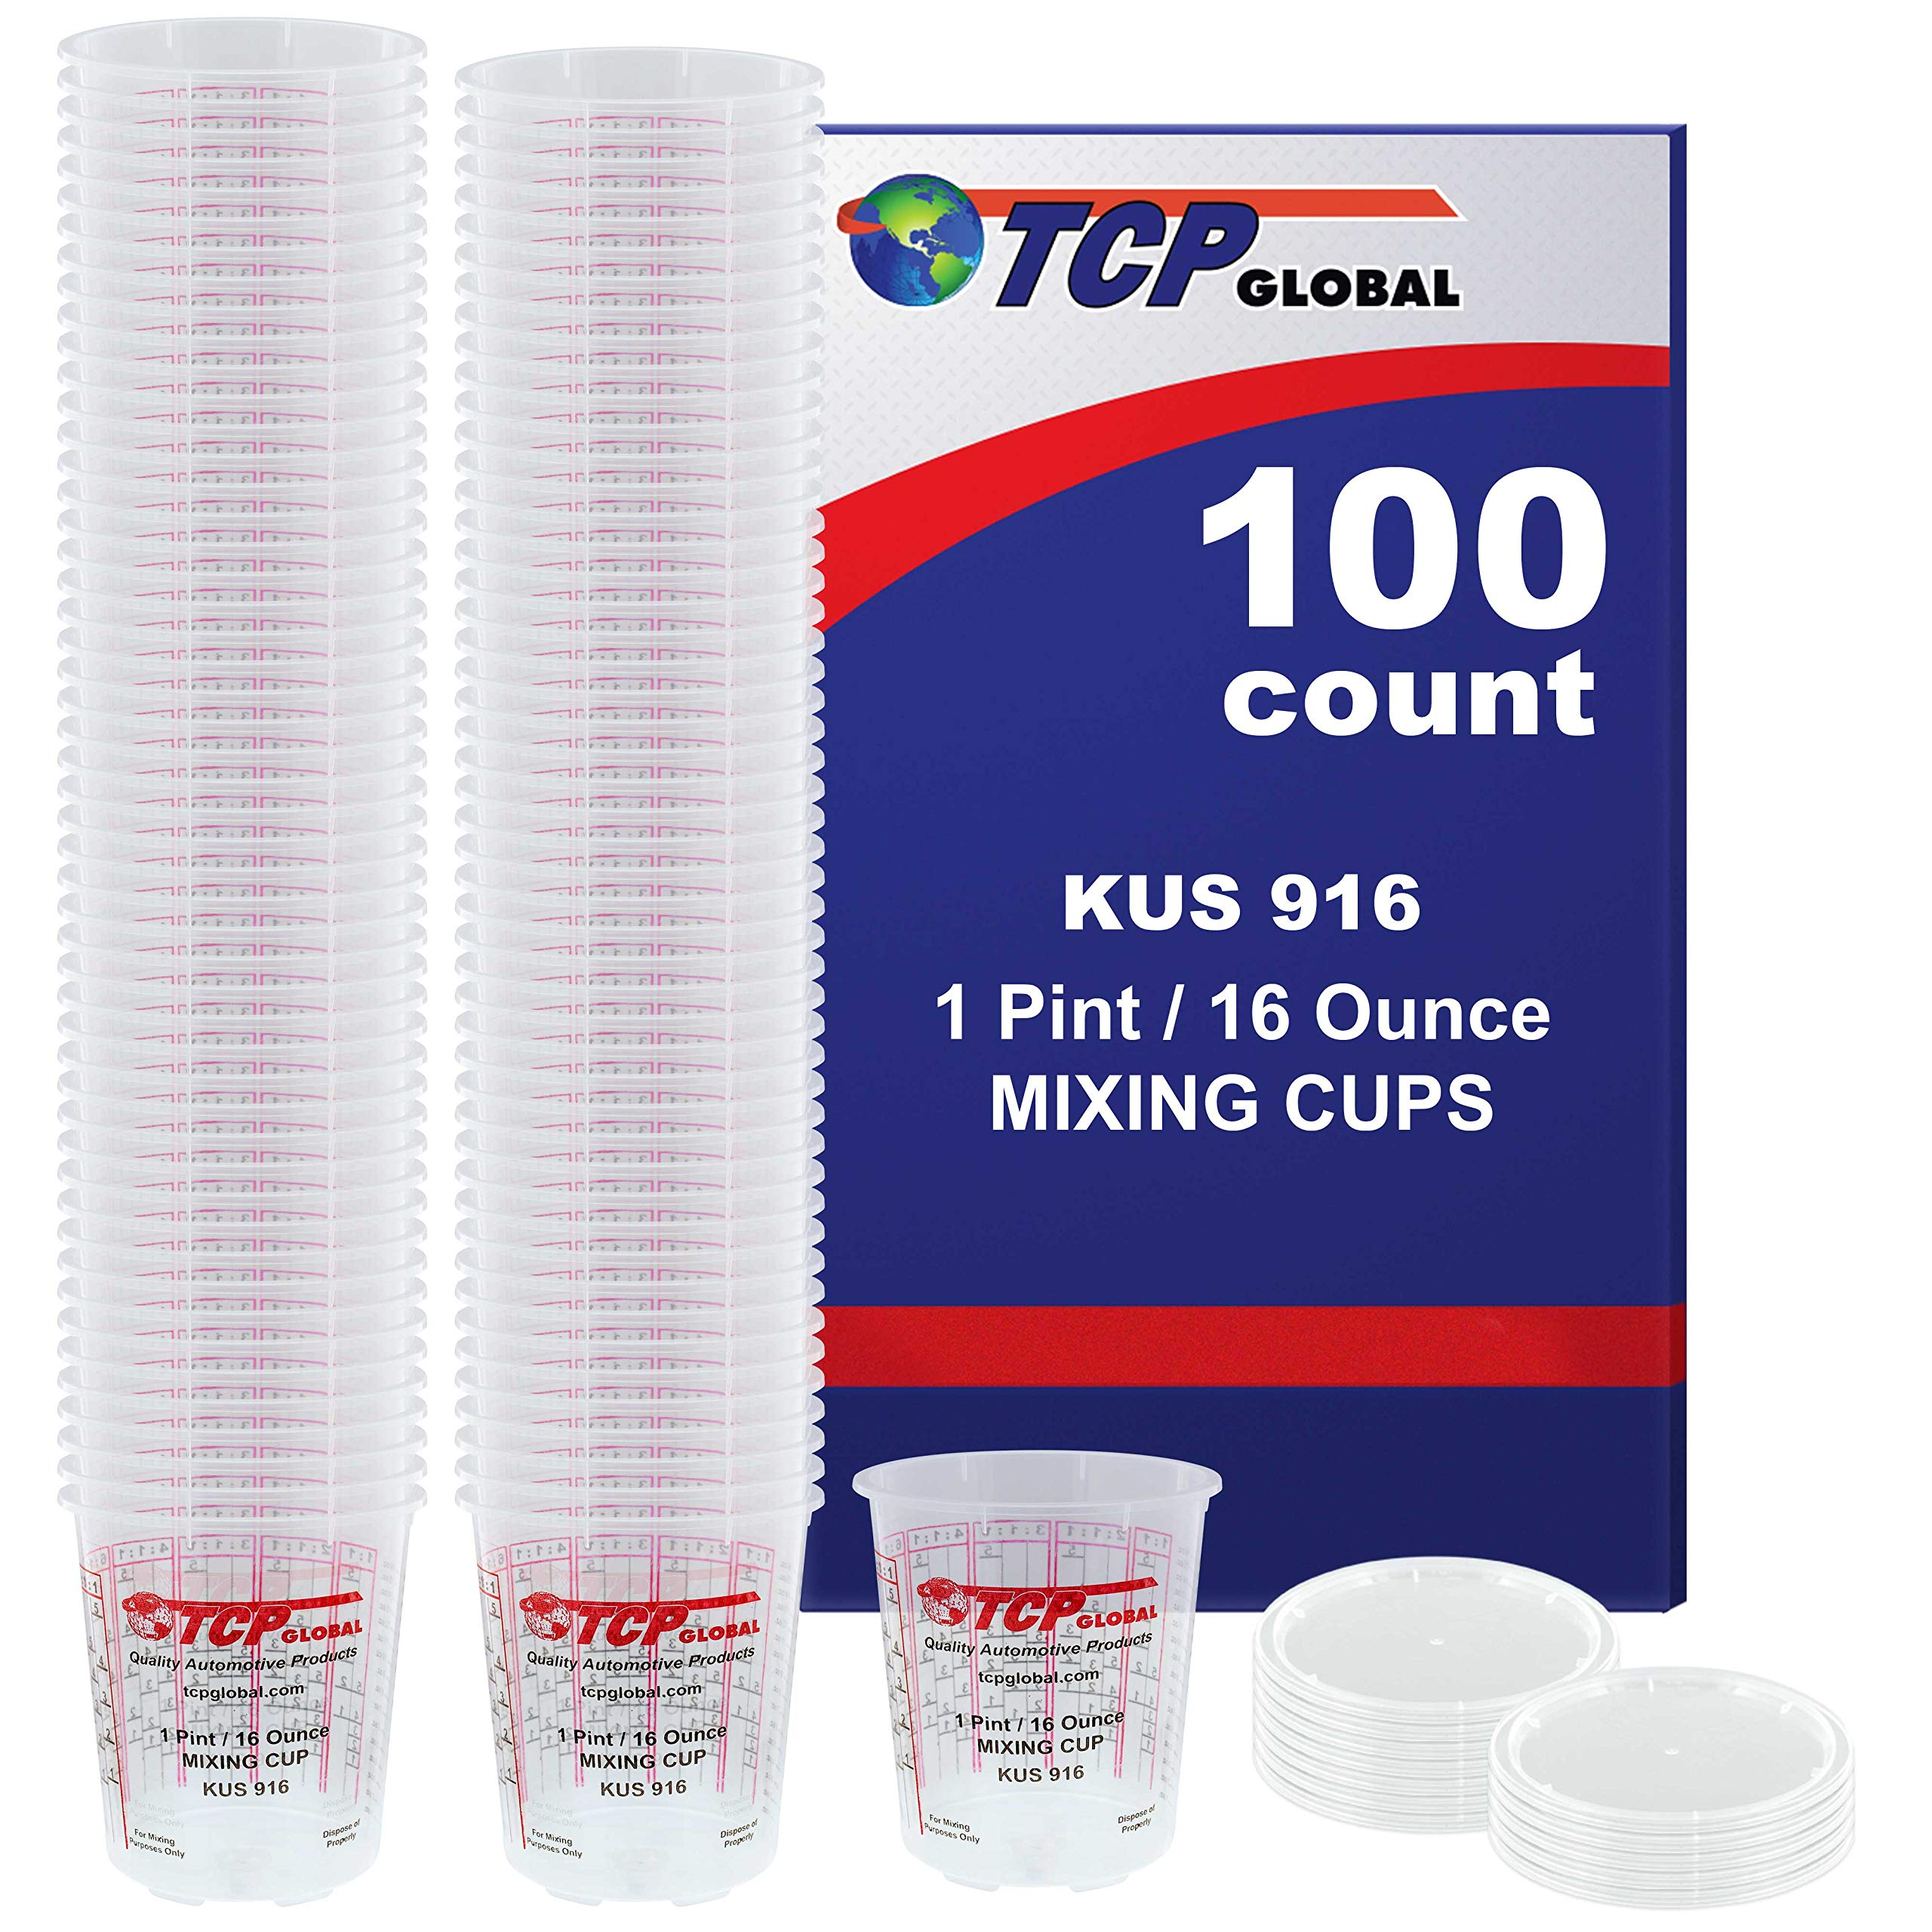 (Full Case of 100 each - Pint (16oz) PAINT MIXING CUPS) by Custom Shop - Cups have calibrated mixing ratios on side of cup BOX OF 100 Cups by Custom Shop